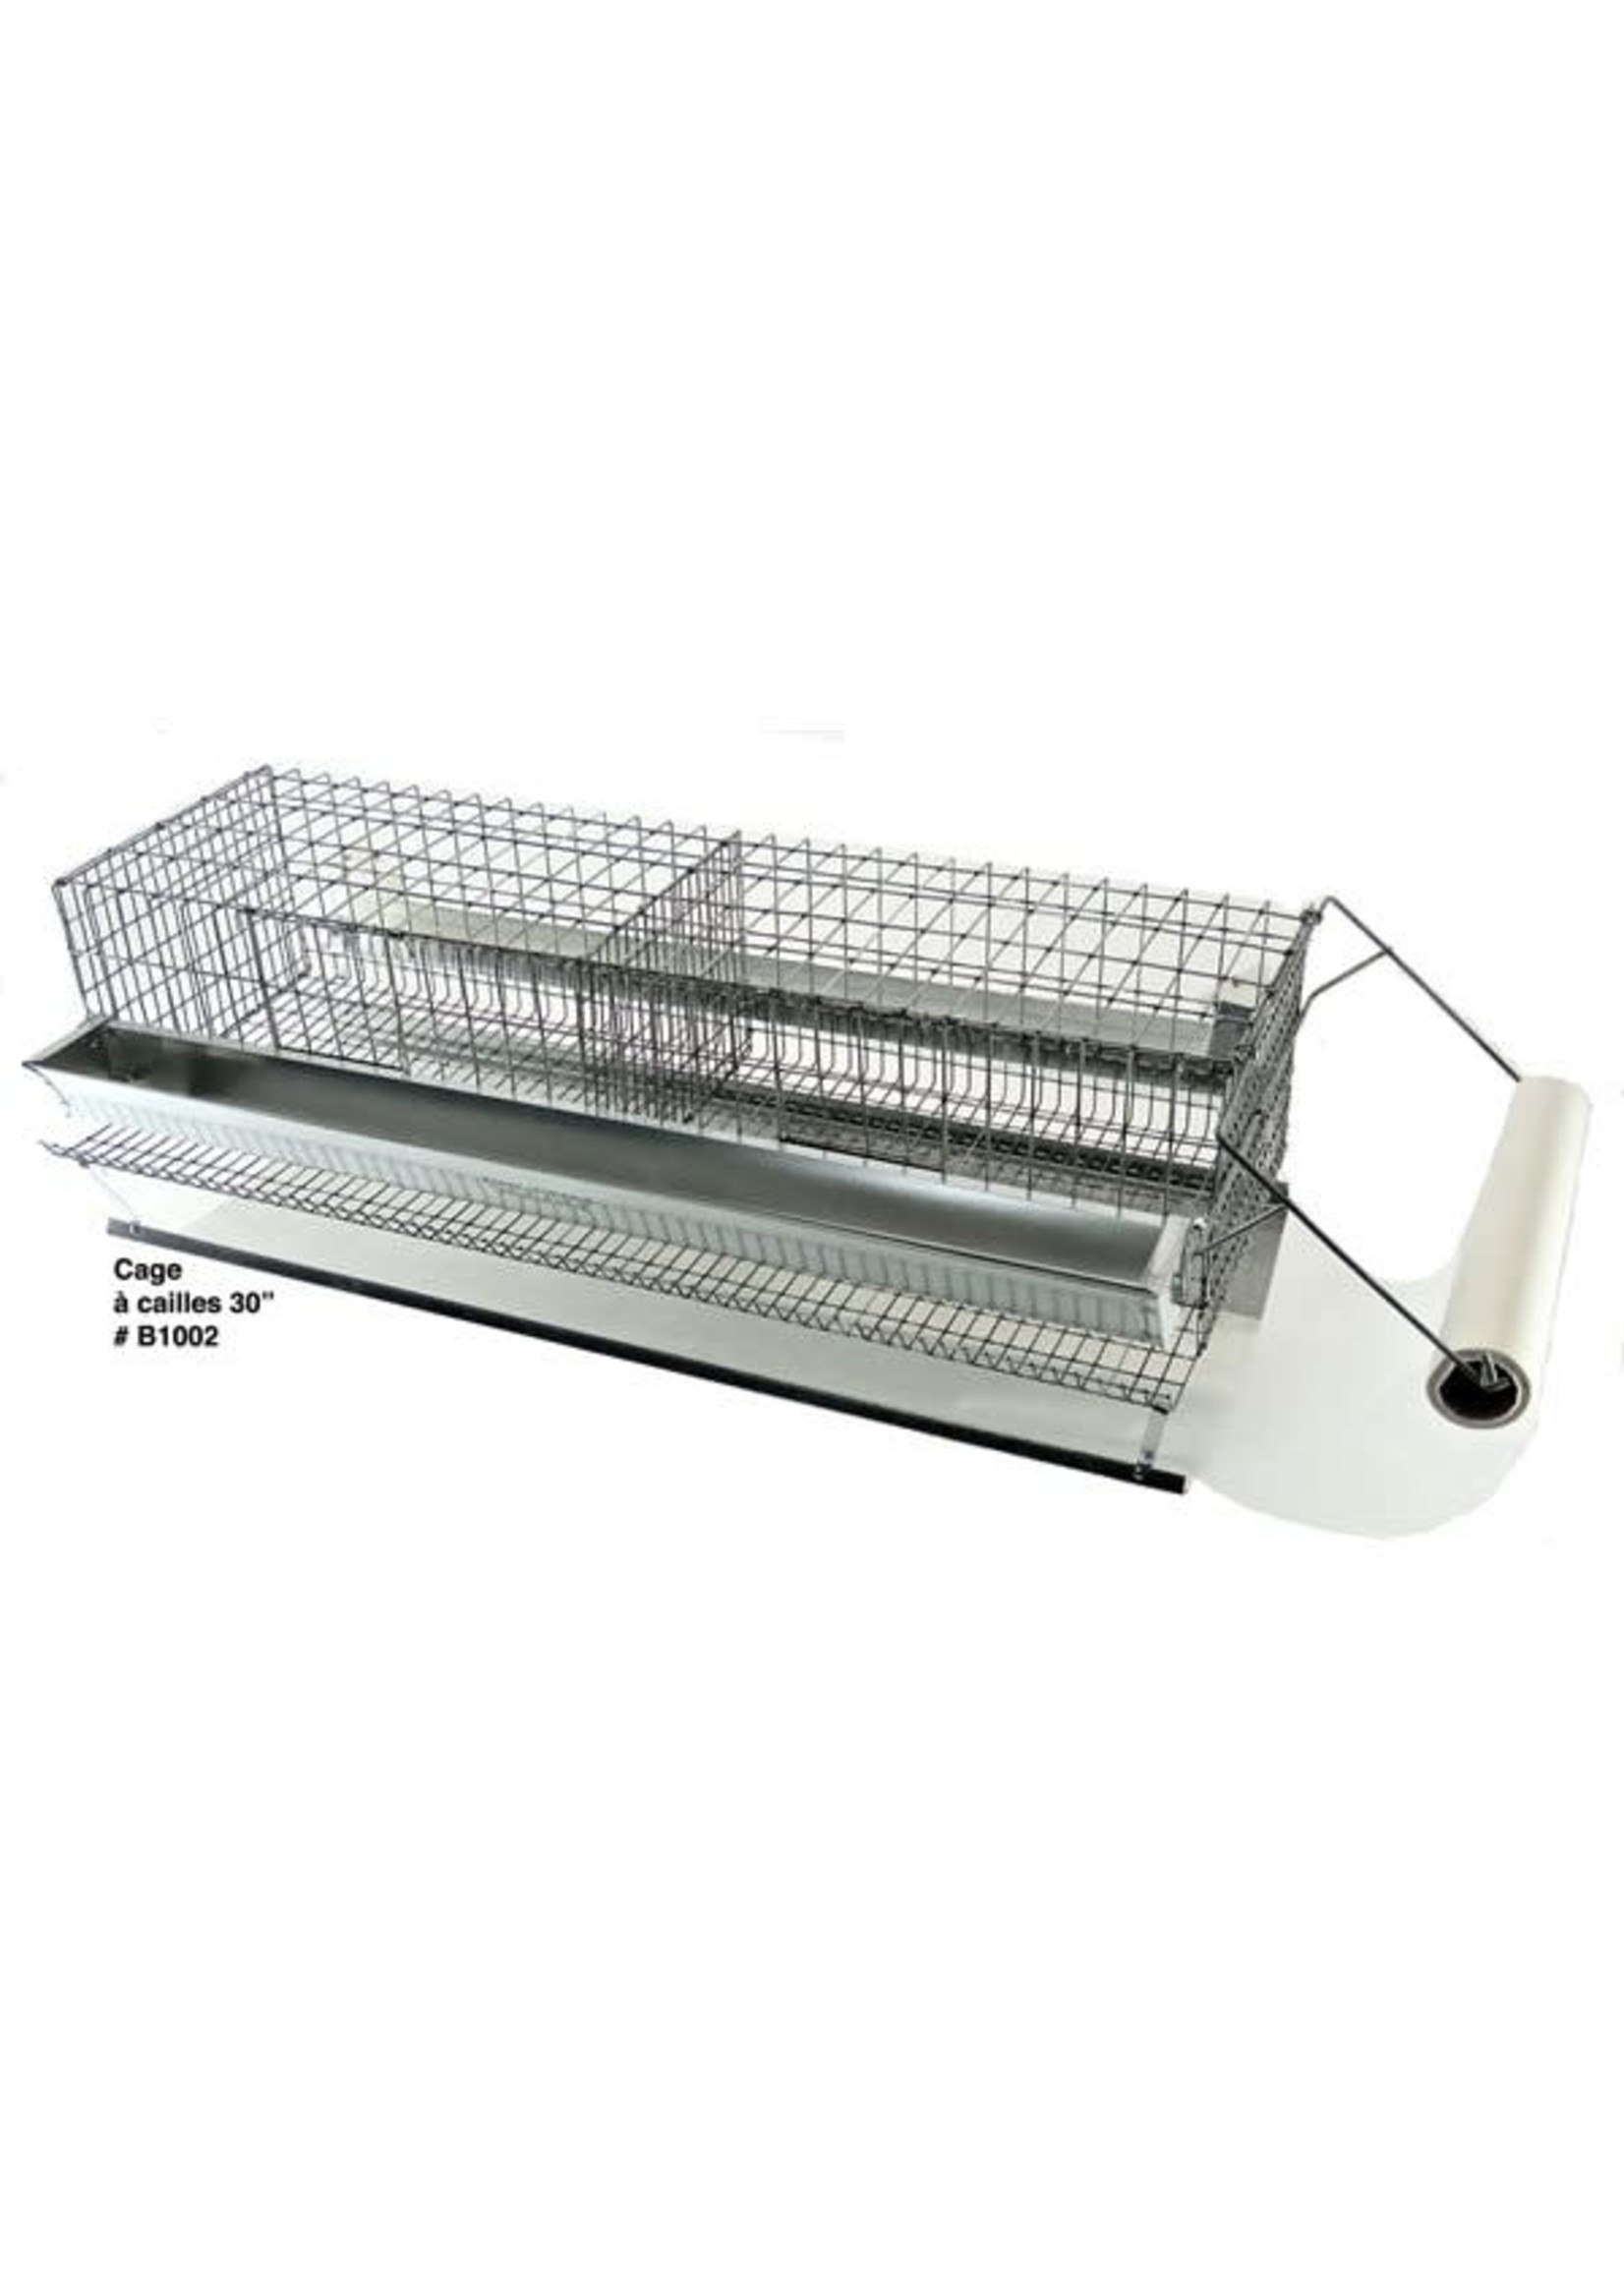 Ranch cunicole 2 cages a cailles 15 X9 X 7